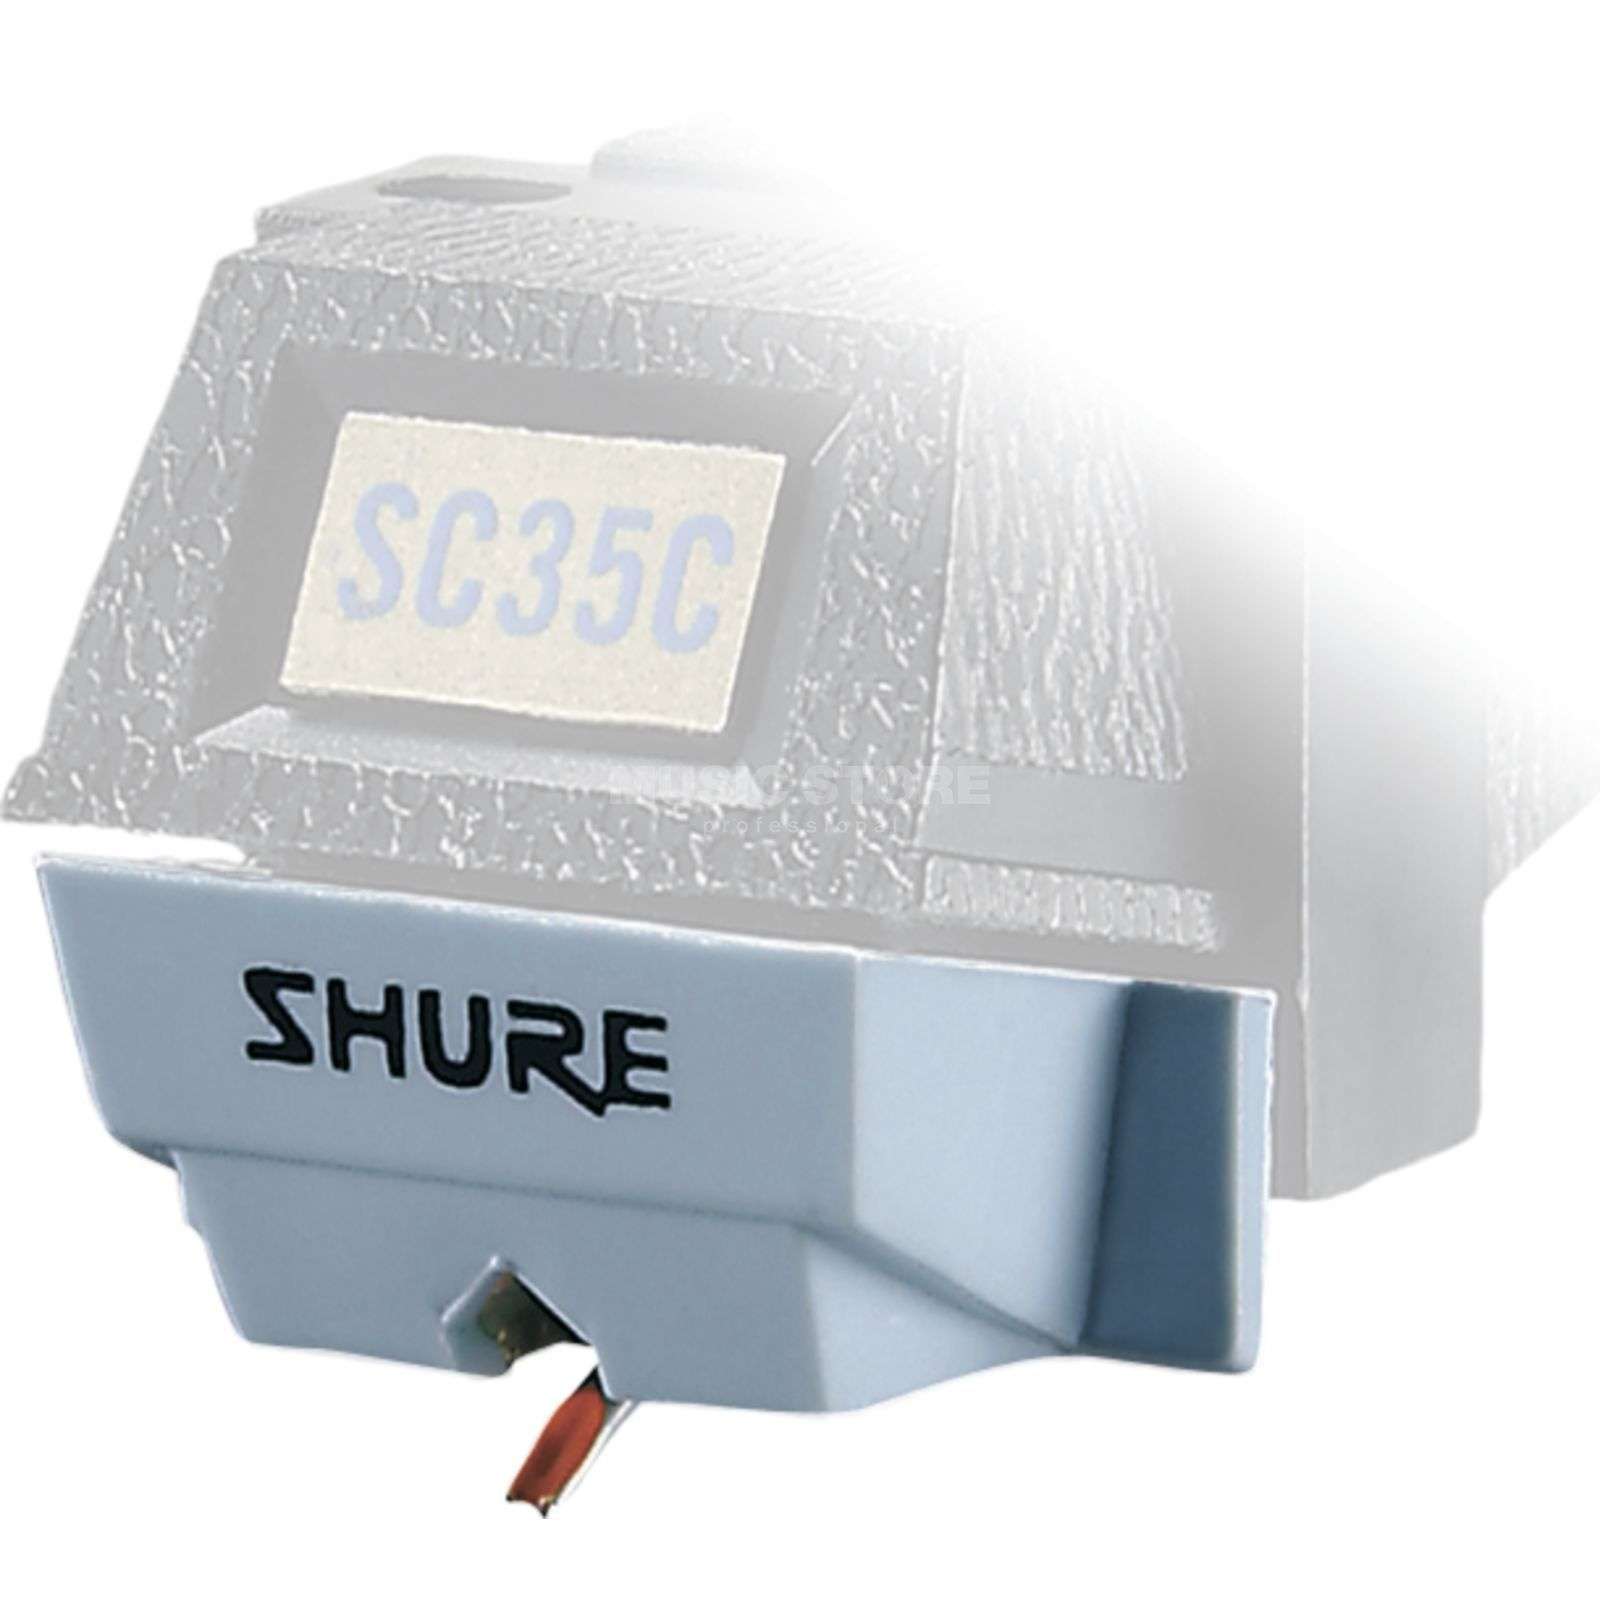 Shure SS35C / Replacement Cartridge for SC35C Produktbillede